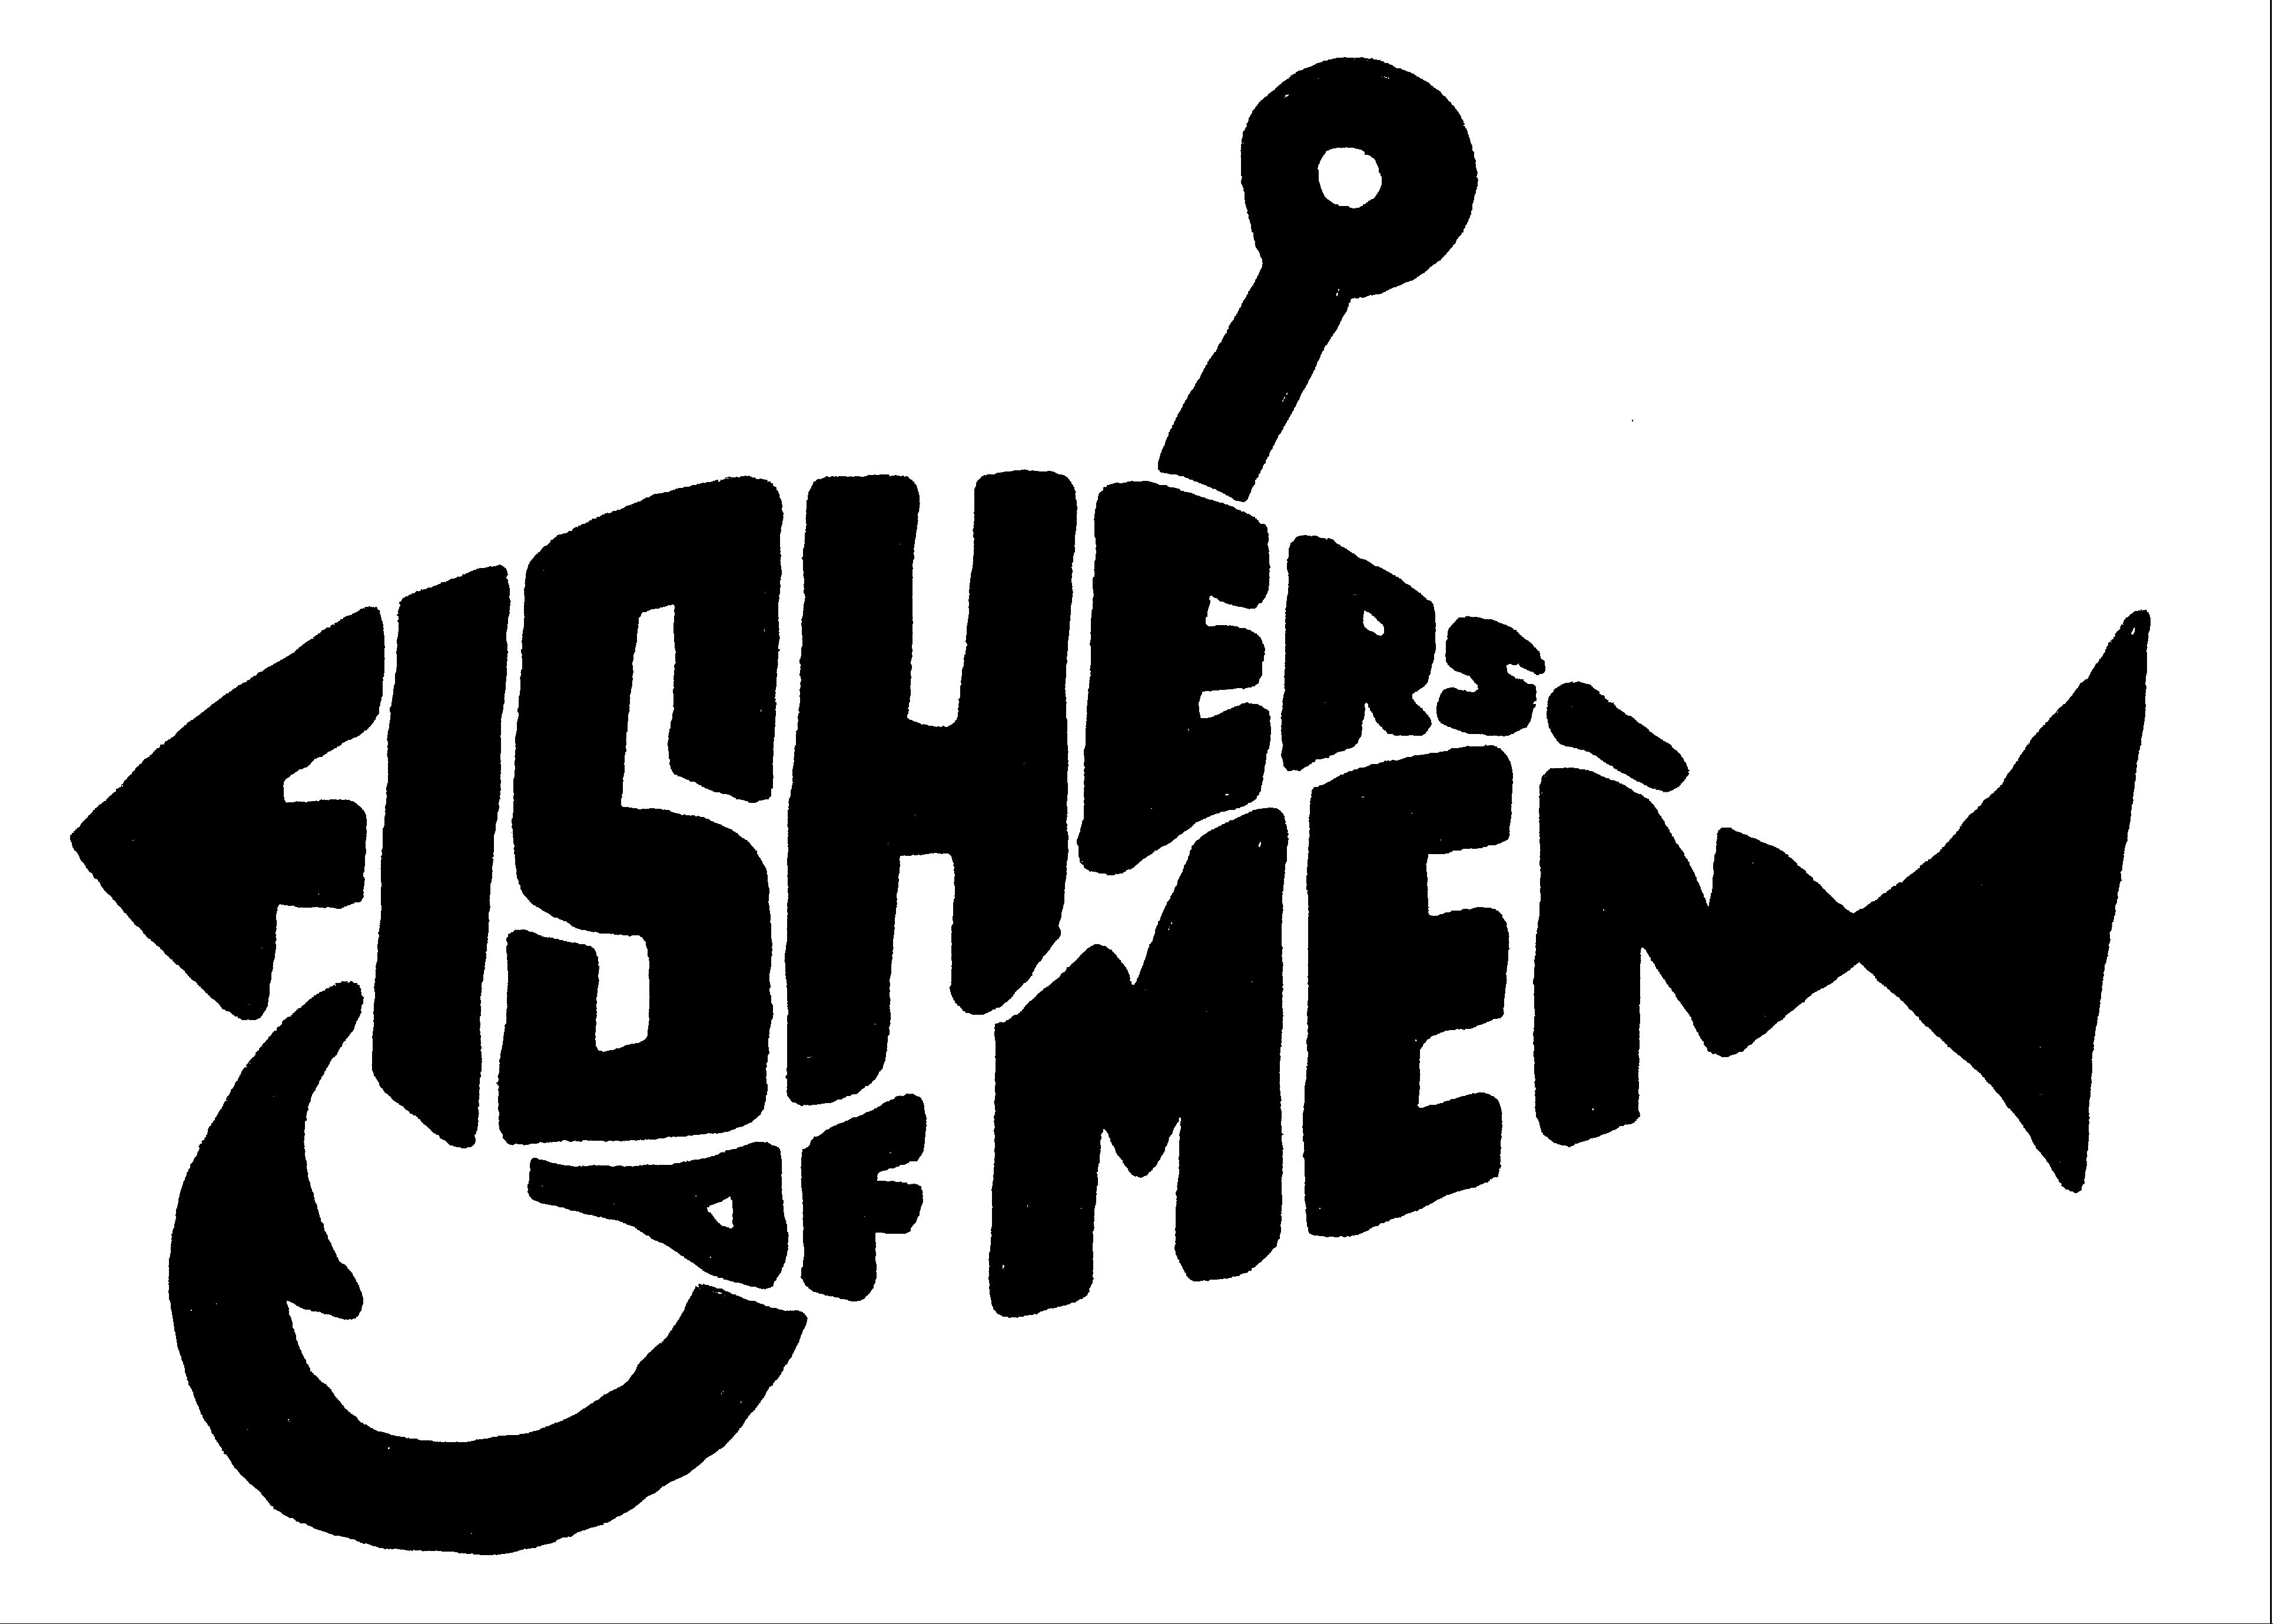 Free lutheran clipart no one can take away your joy download Free christian fishers of men clipart | scan | Mens ministry, Church ... download